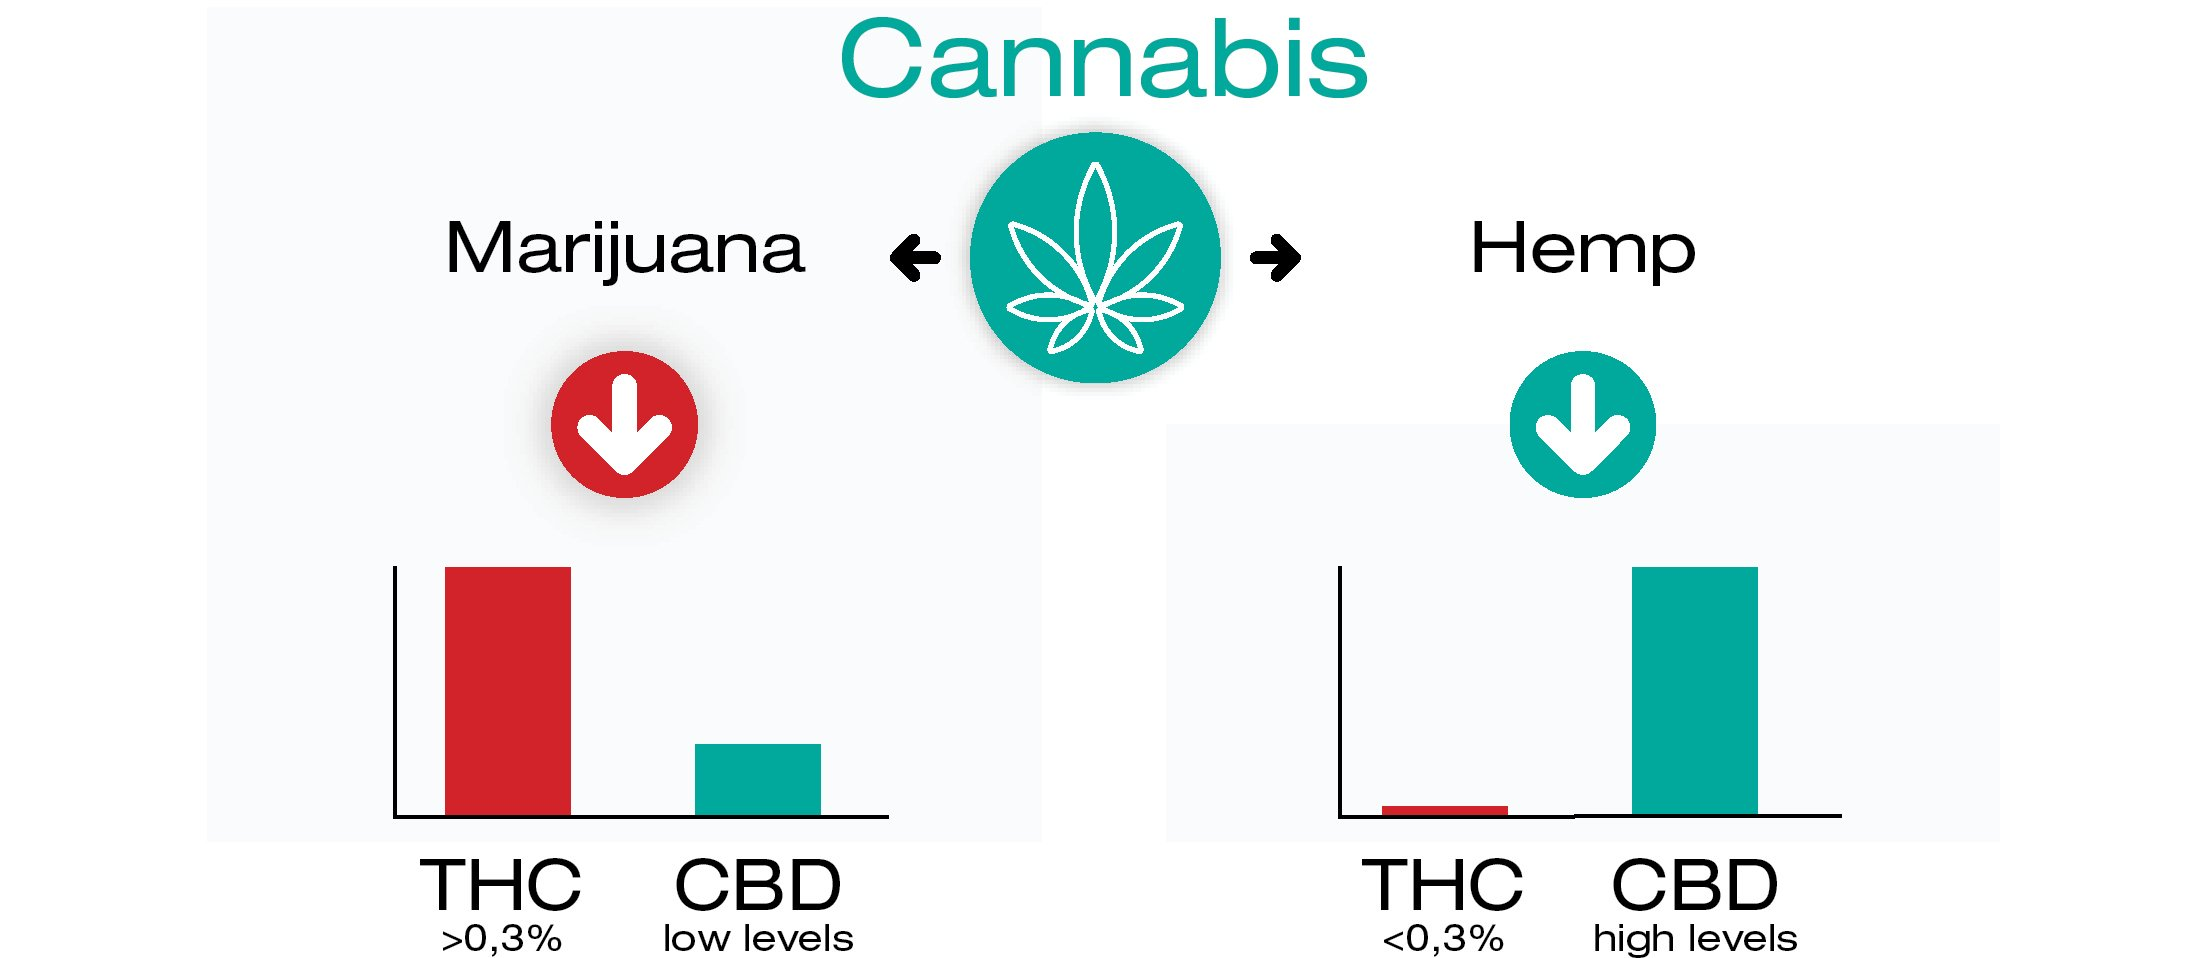 Where do CBD and THC come from?